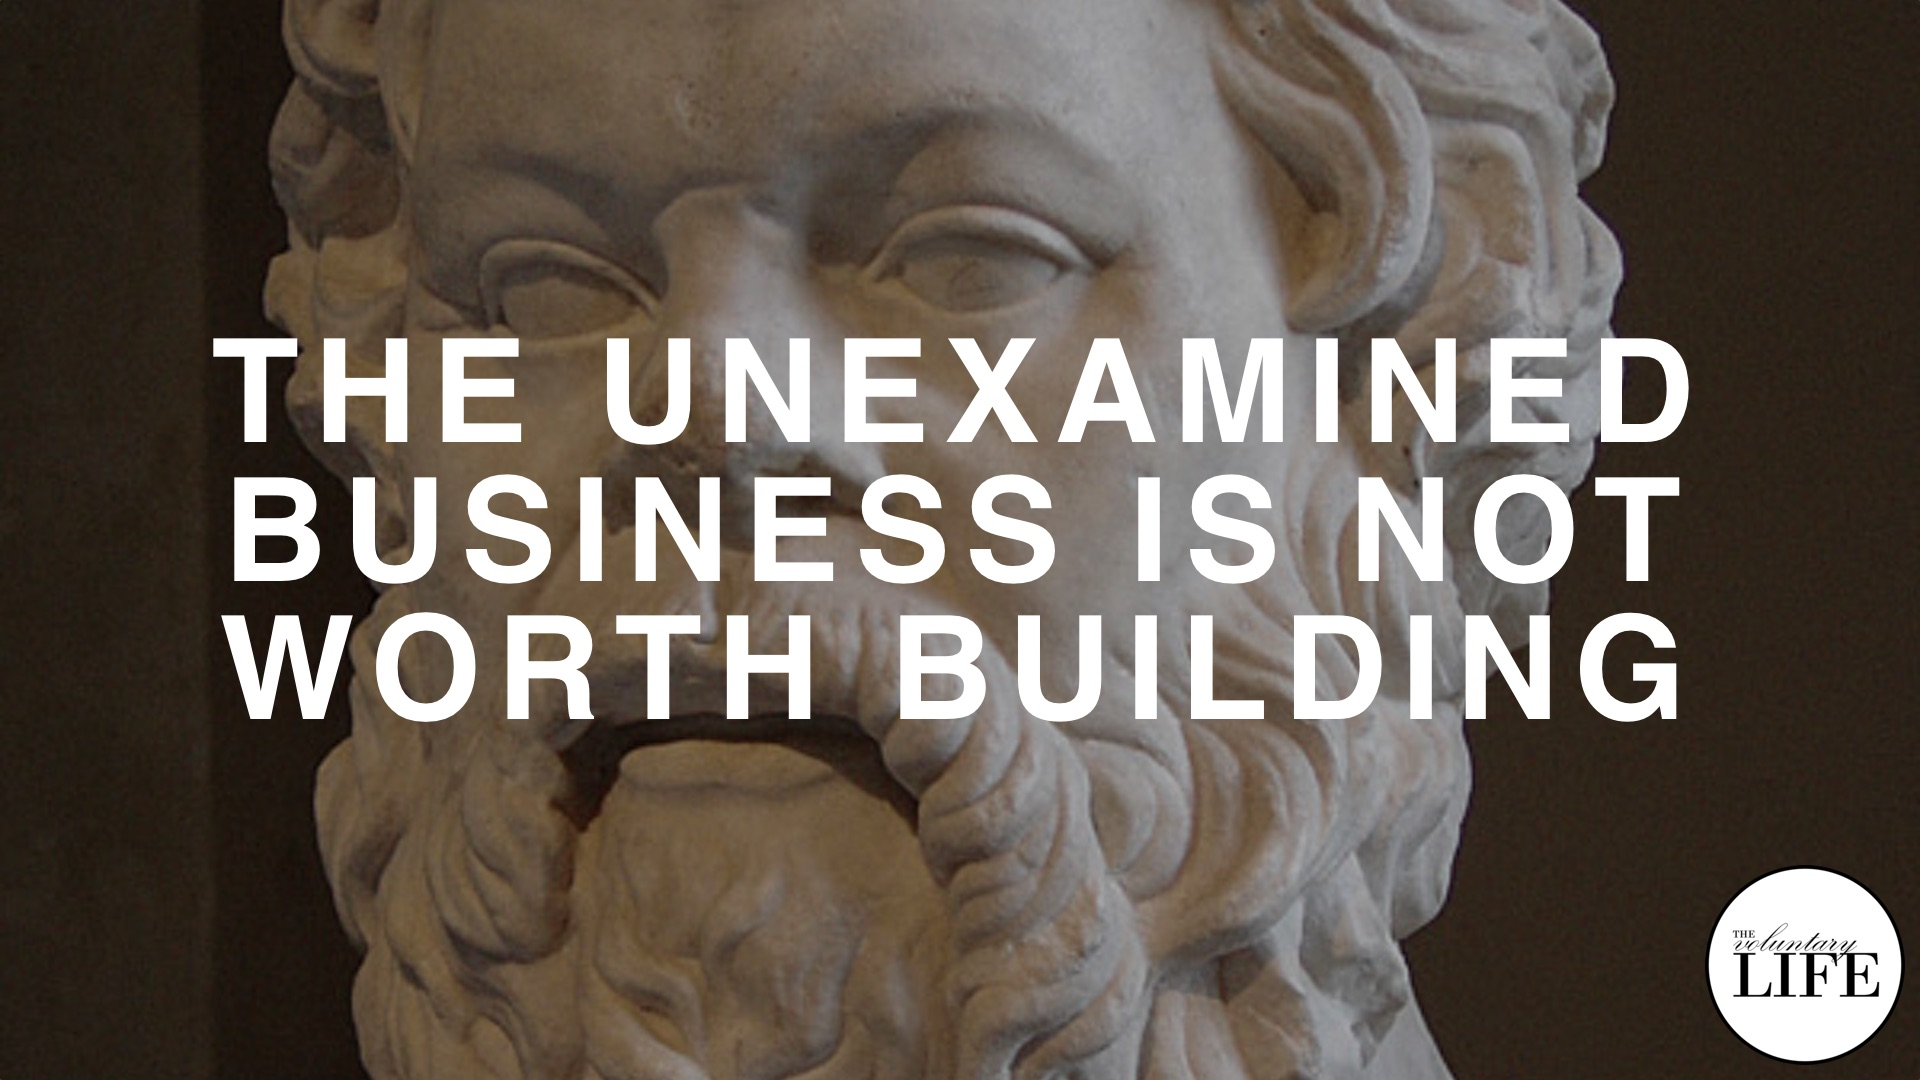 45 Entrepreneurship Part 5: The Unexamined Business Is Not Worth Building